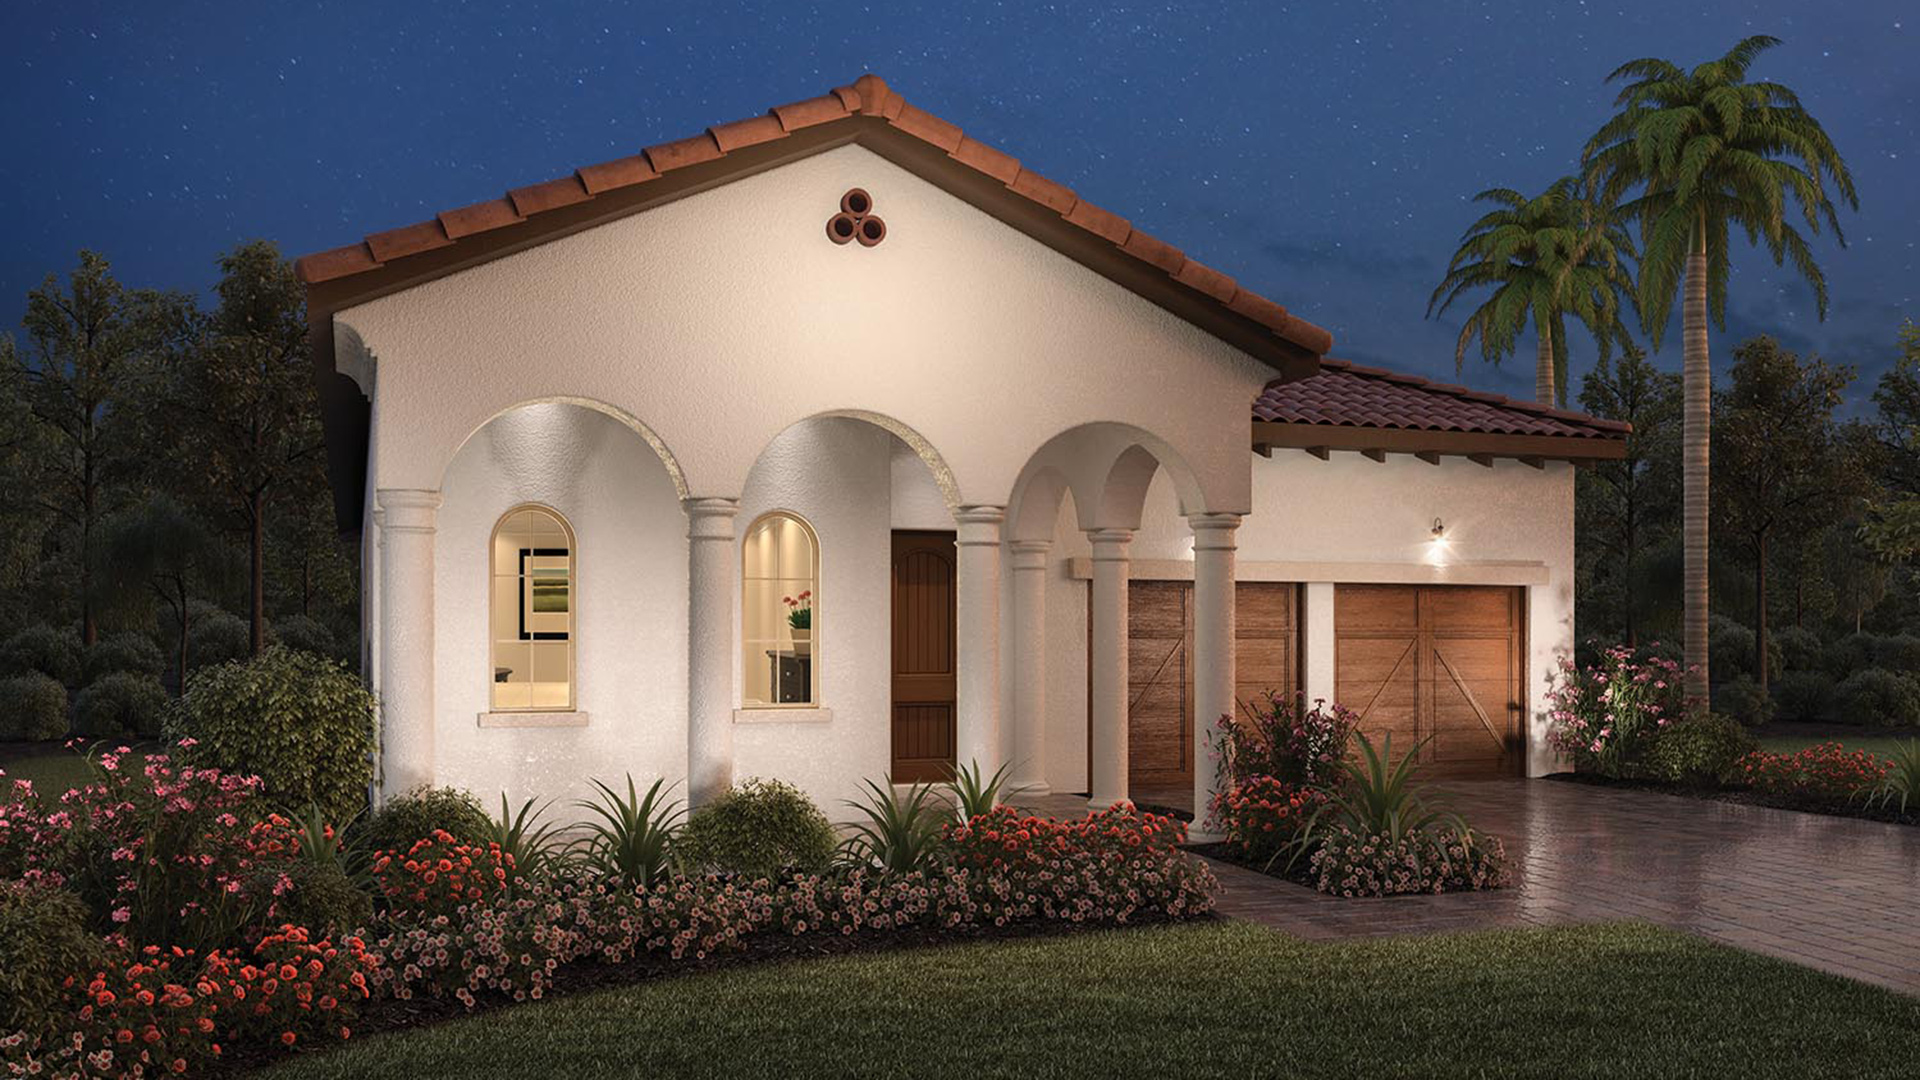 Lakeshore executive collection the sabel home design for Mobel kolonial style